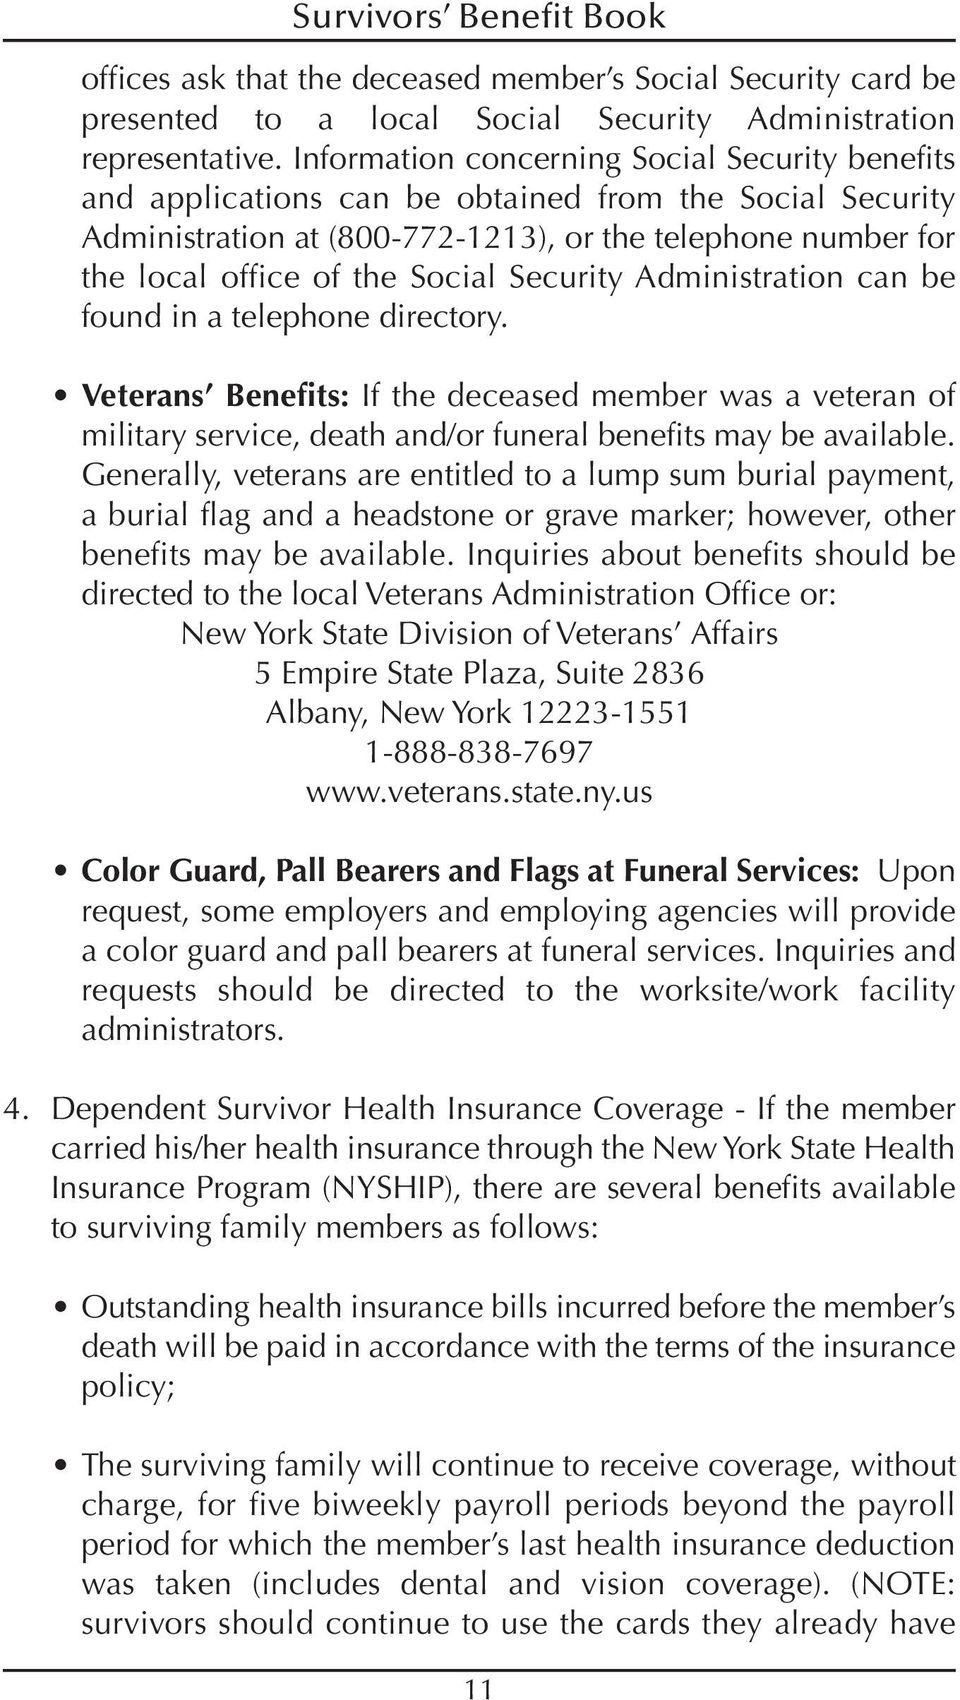 Security Administration can be found in a telephone directory. Veterans Benefits: If the deceased member was a veteran of military service, death and/or funeral benefits may be available.